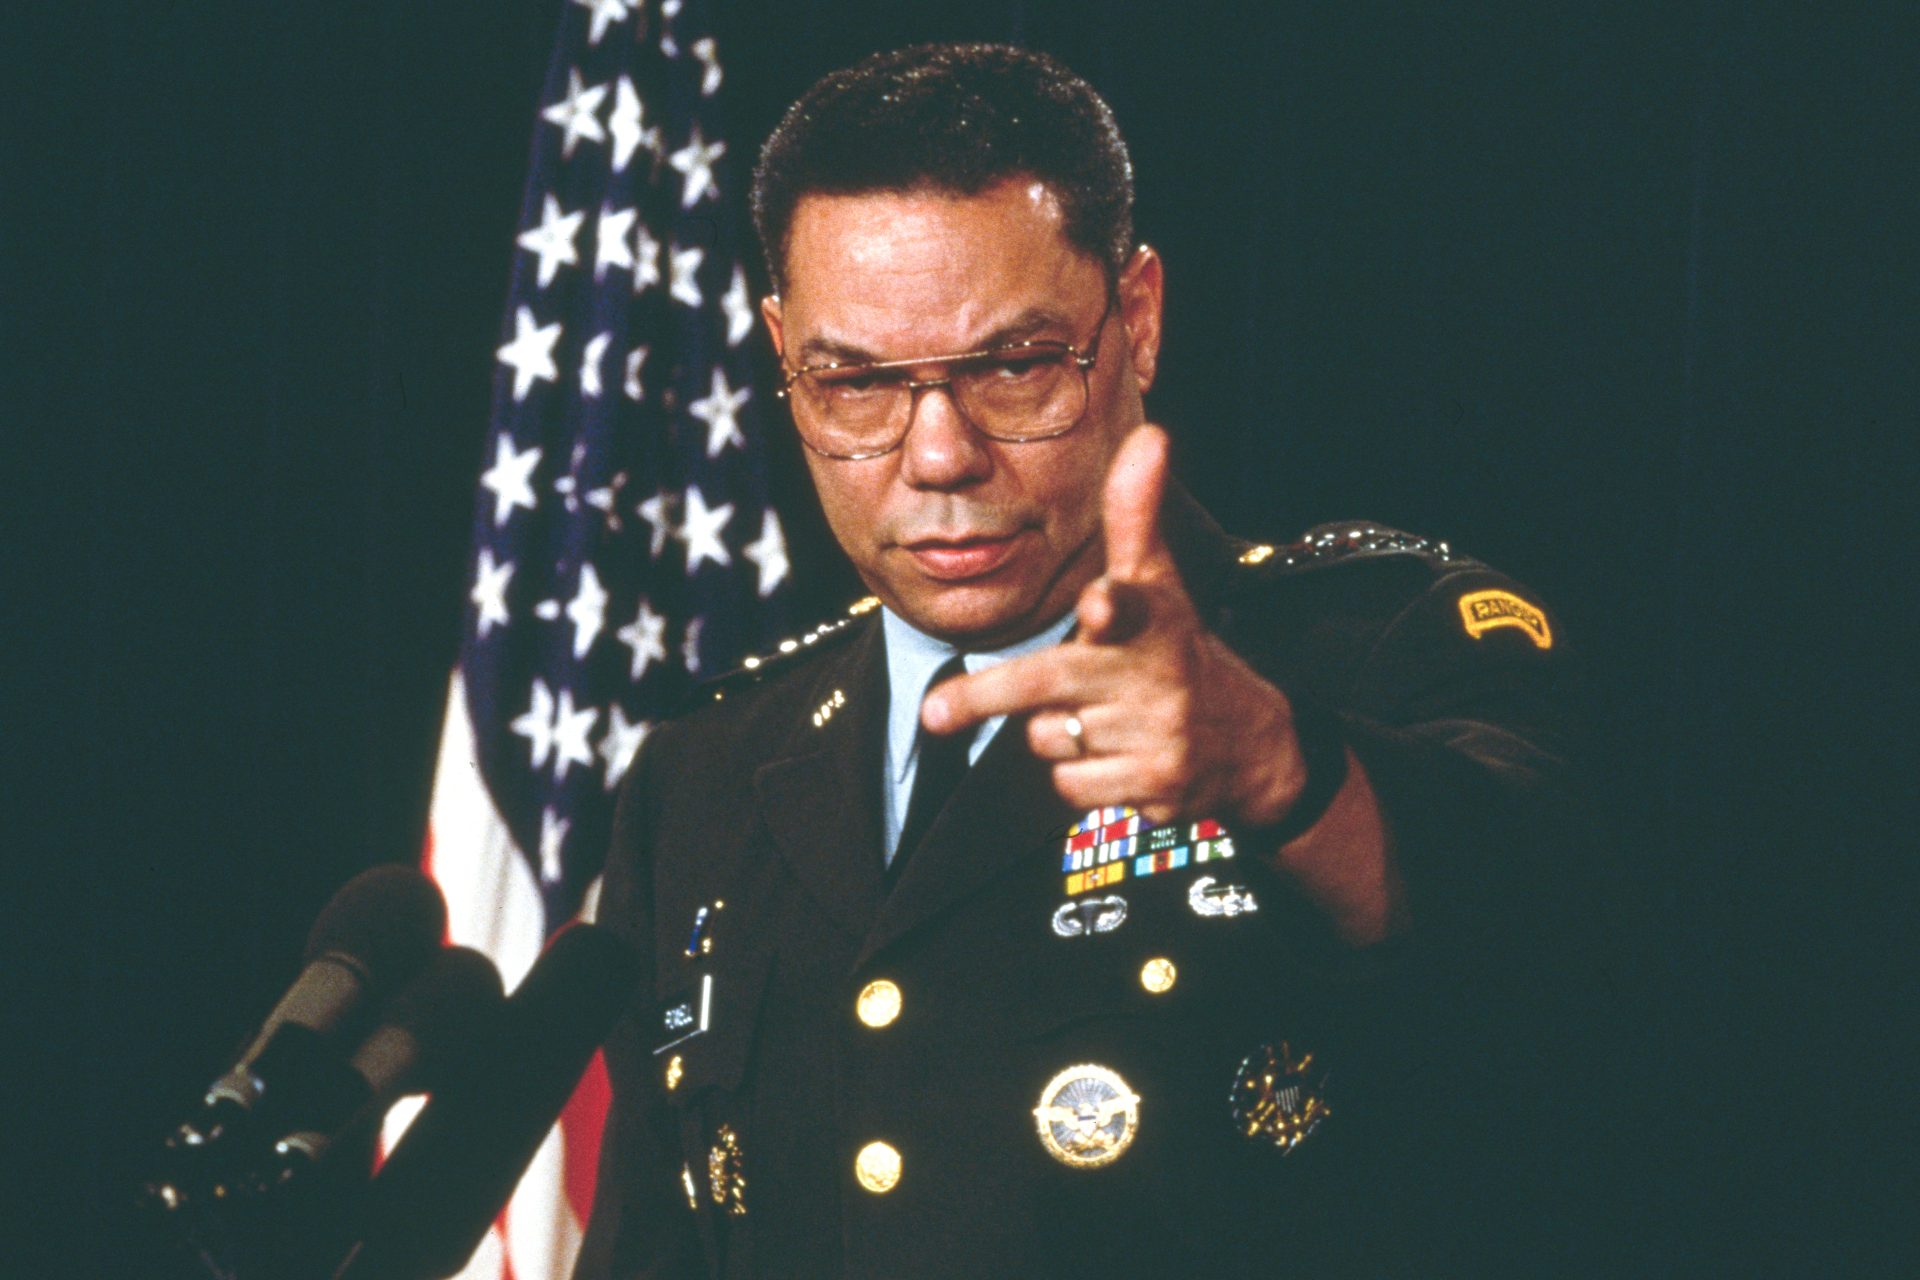 Colin Powell, Secretary of State during Bush presidency and Iraq war, dies at 84 of COVID-19